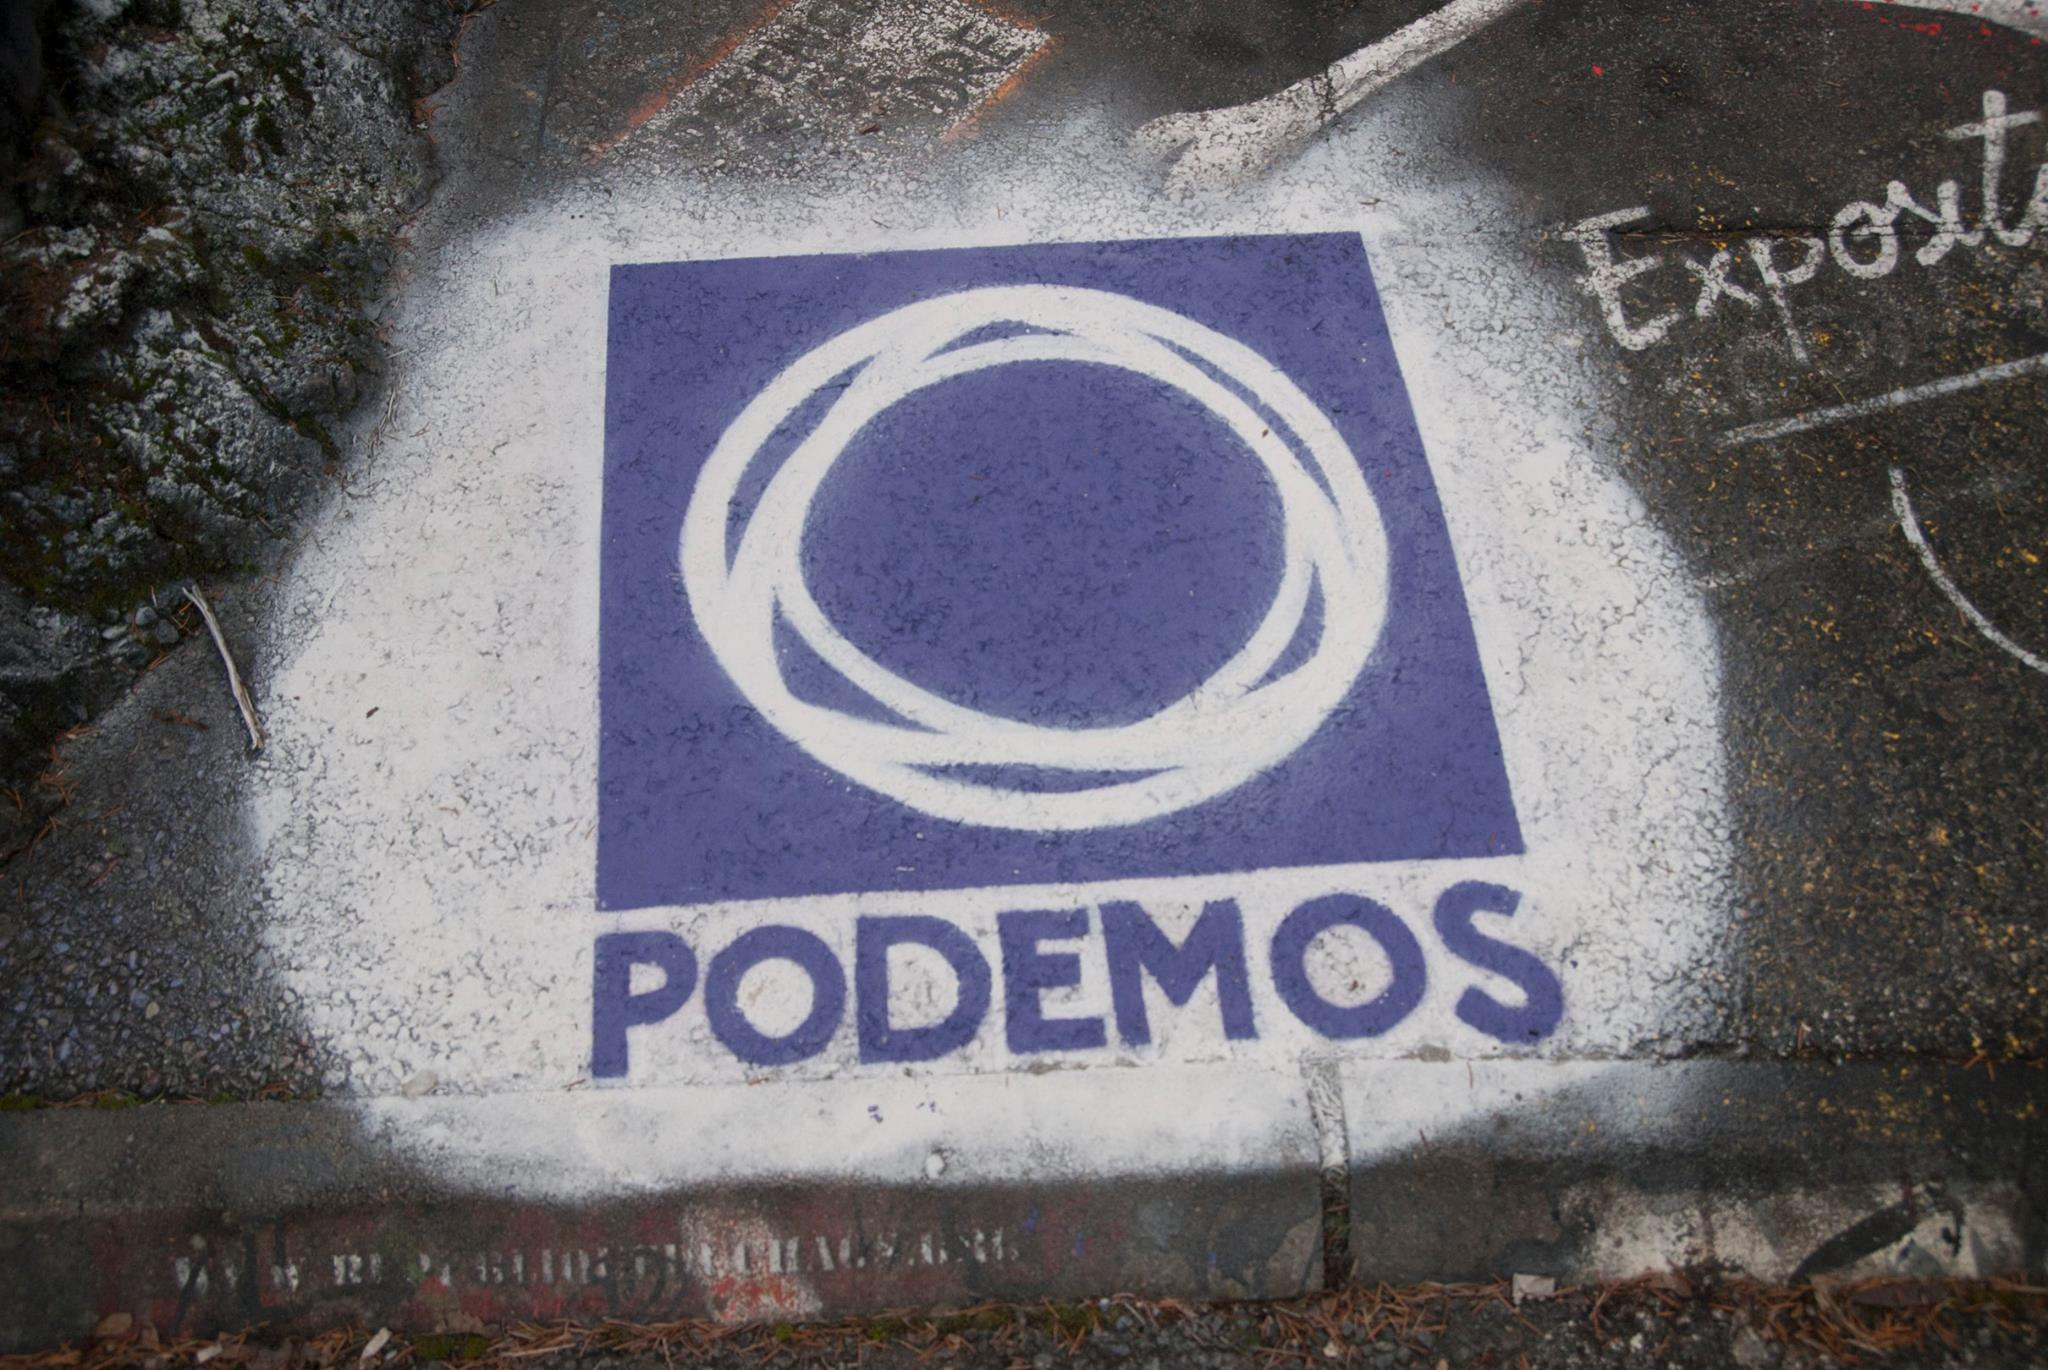 Should Jeremy Corbyn's Labour learn from Podemos?